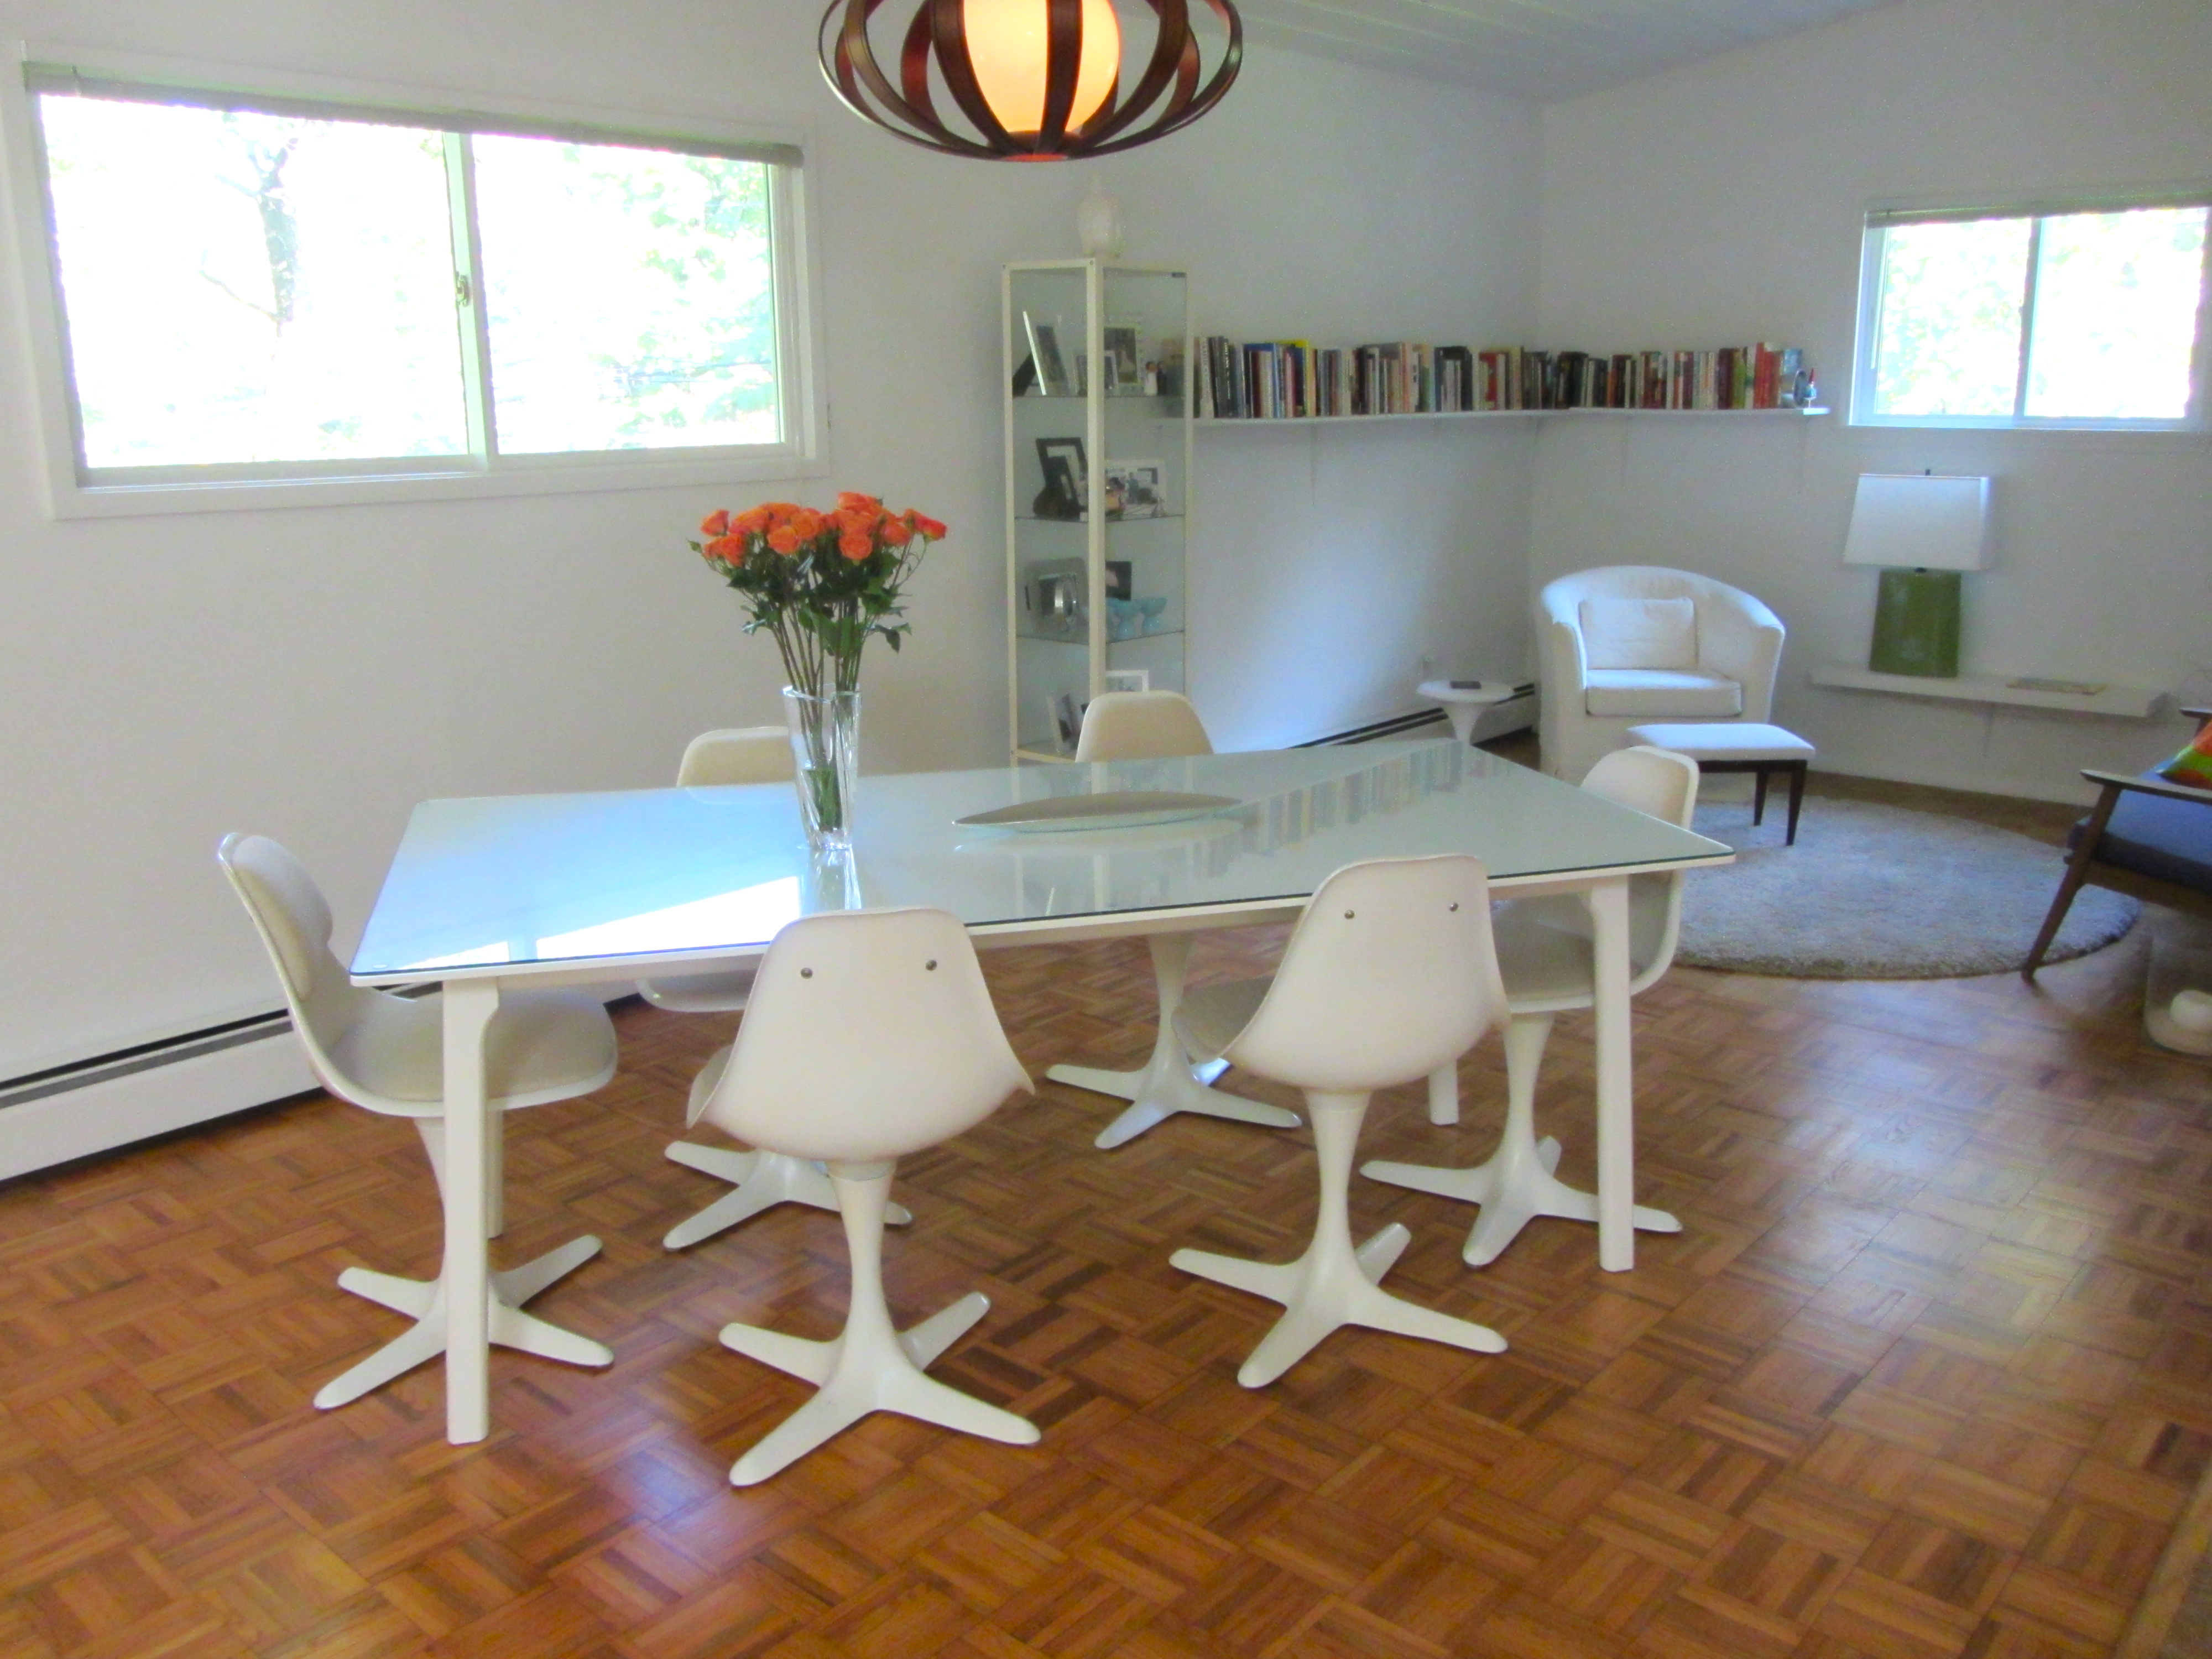 tulip dining room chairs grey leather table vintage our almost  the home tome